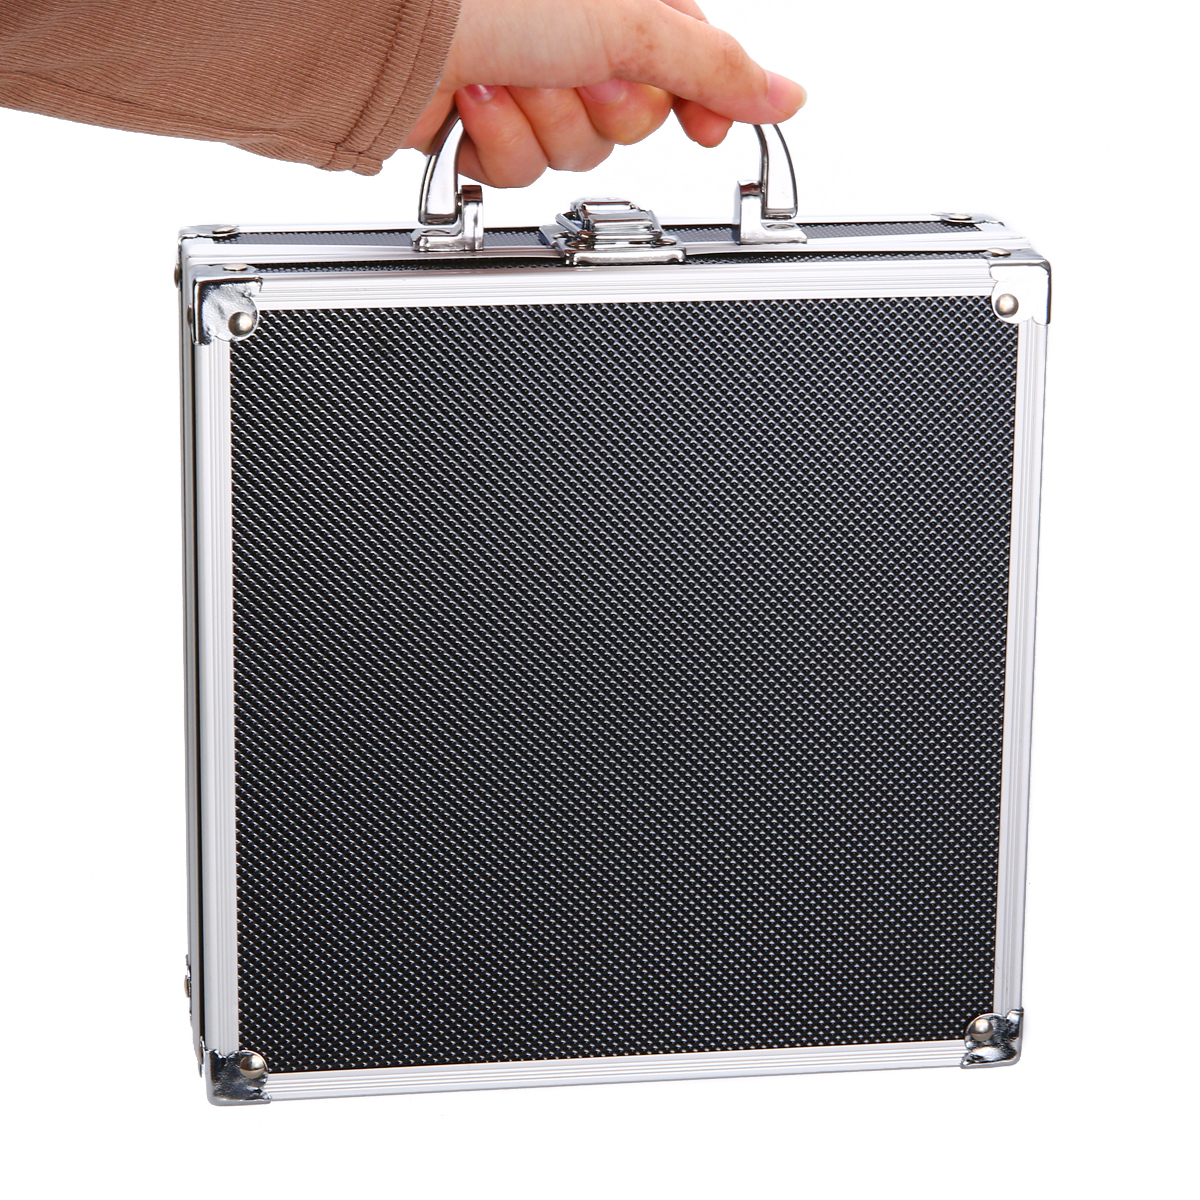 Portable Aluminium Alloy Handheld Box Tool Storage Suitcase Flight Case Organizer +Sponge For Travel Luggage Tool Holder